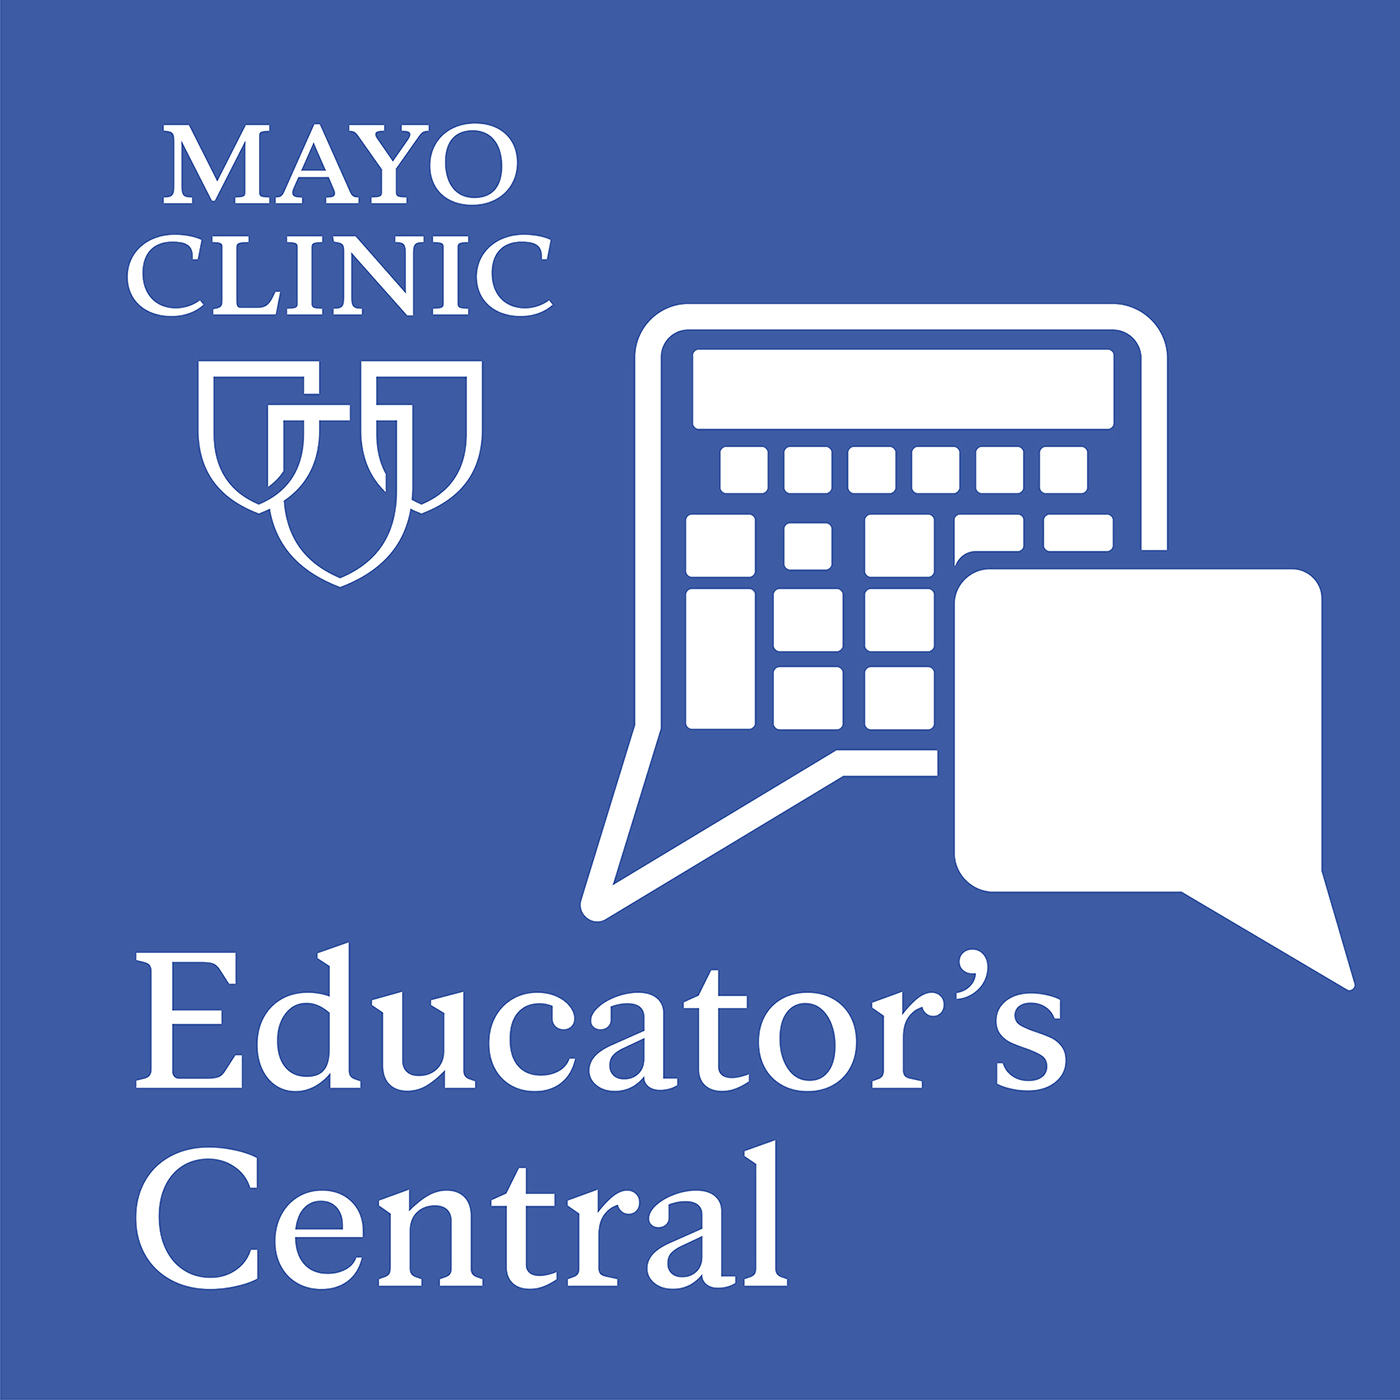 Mayo Clinic Educator's Central